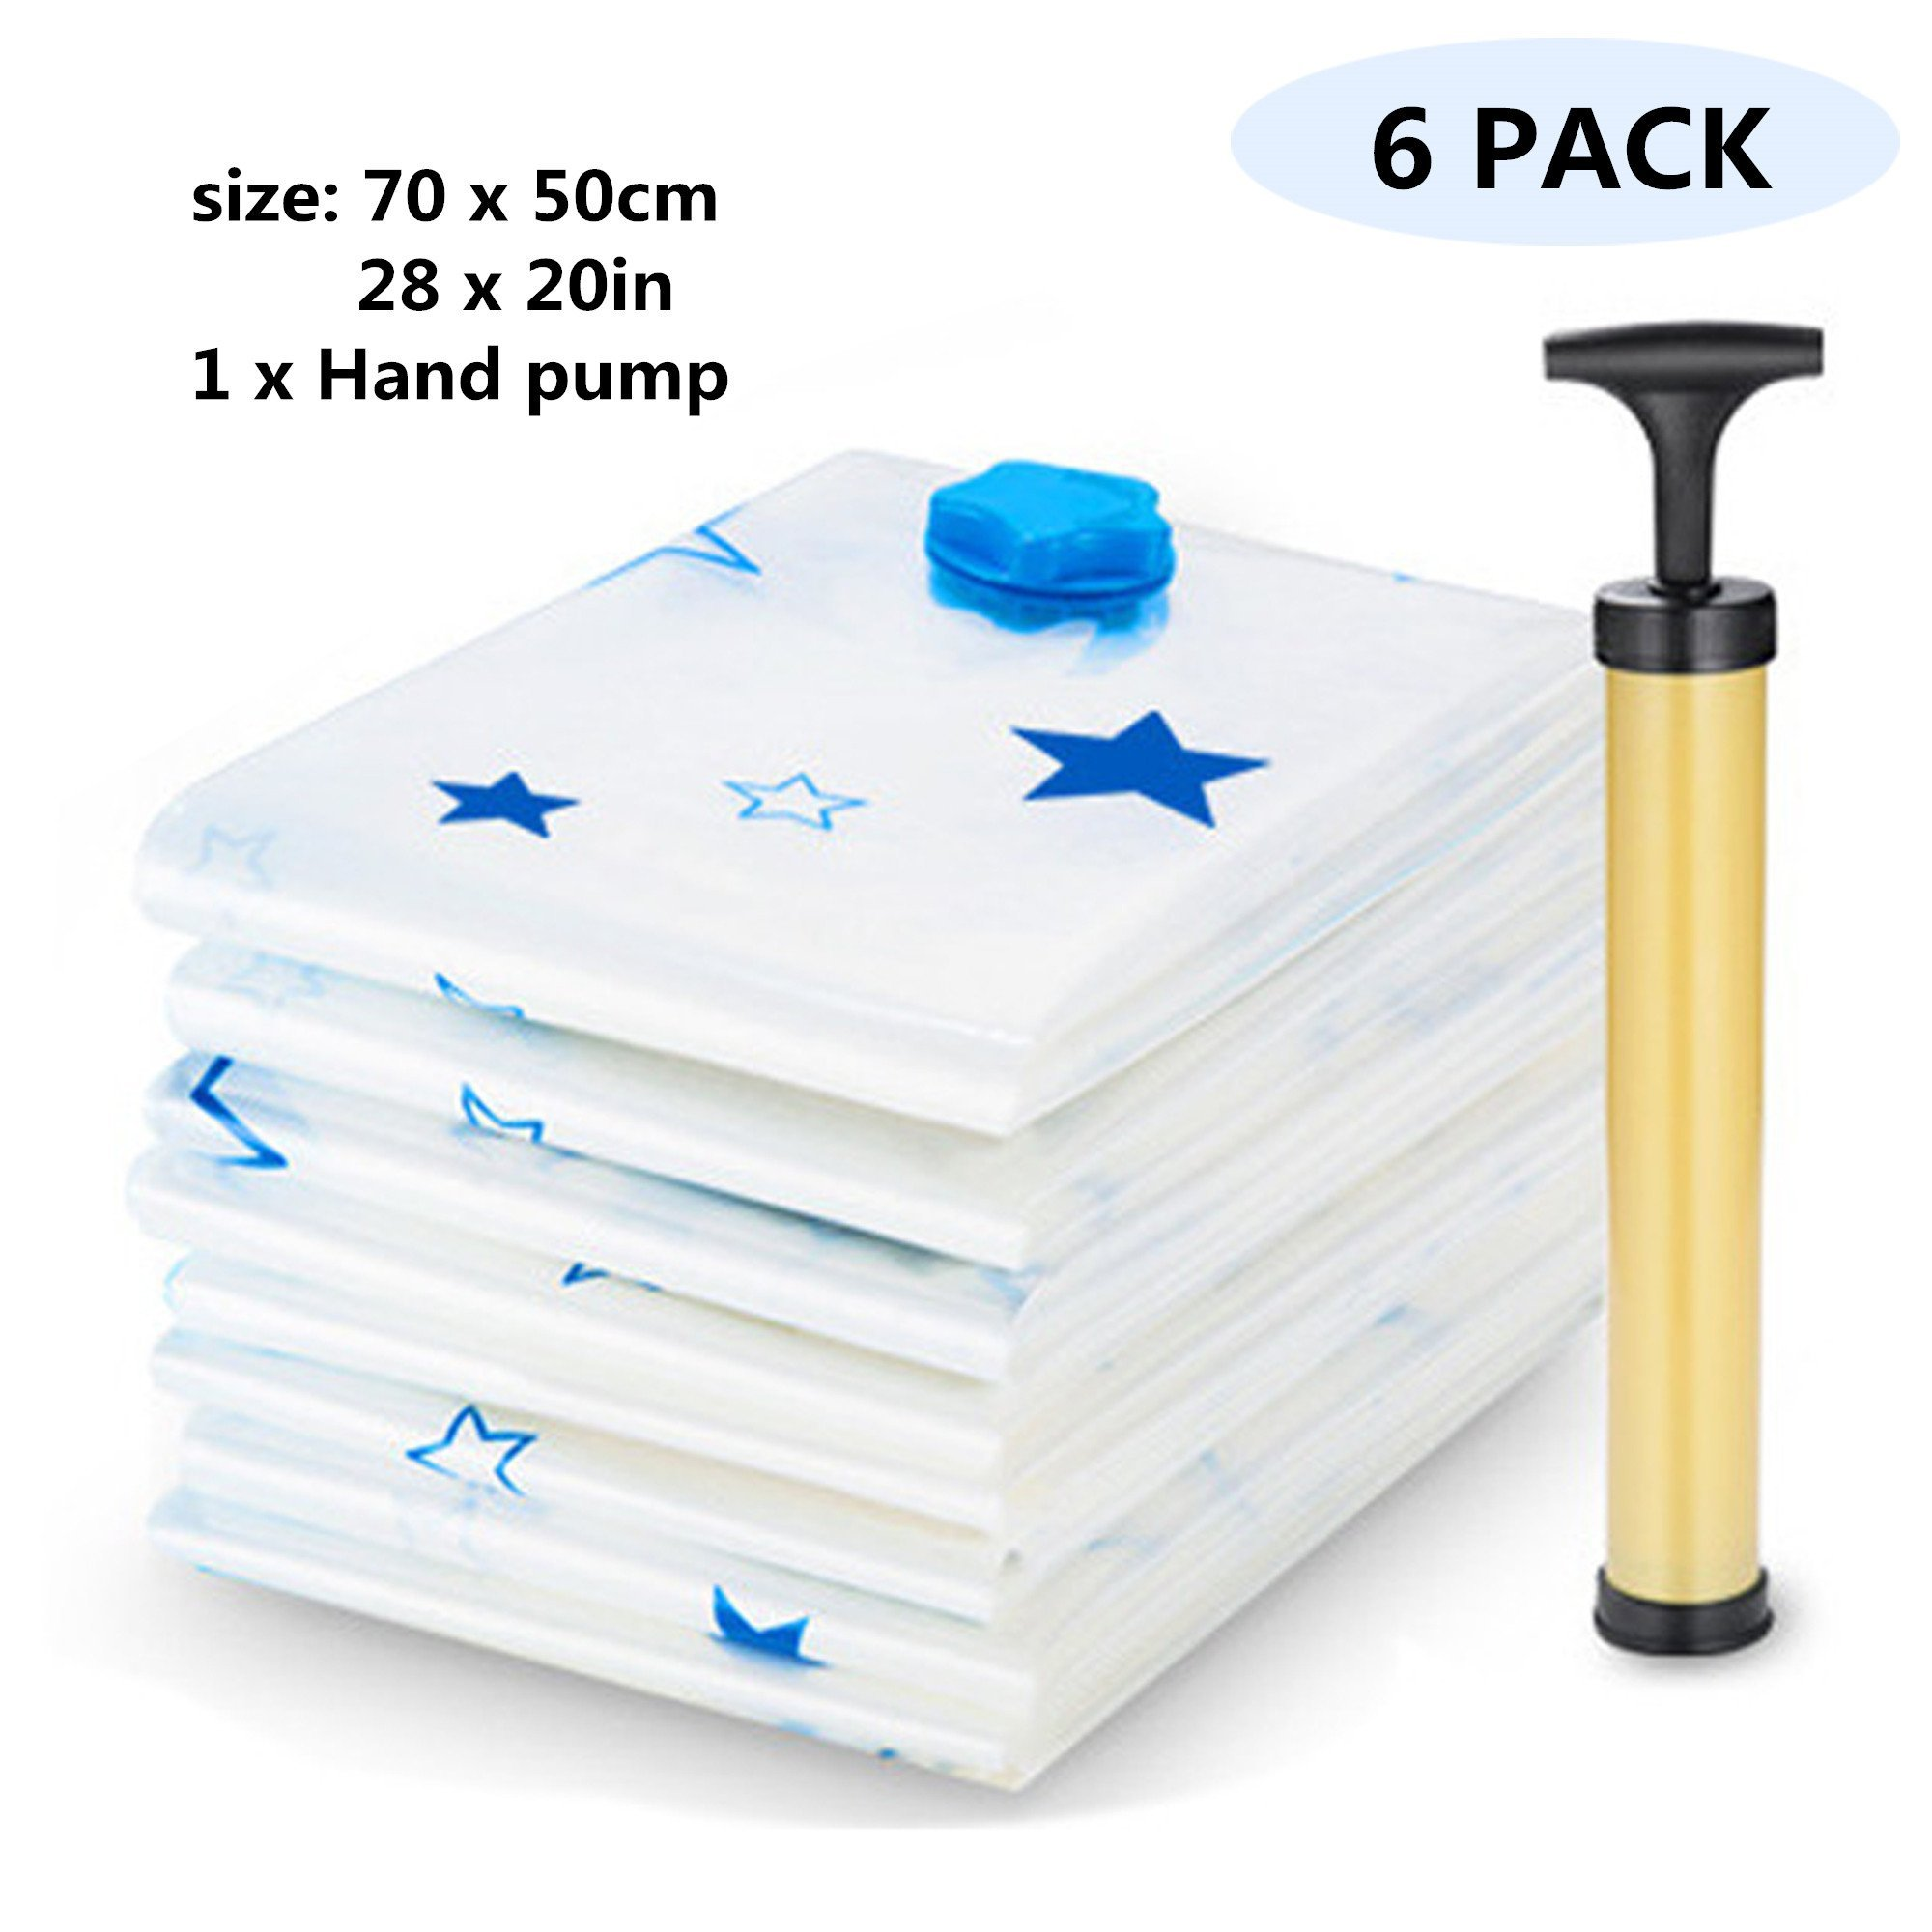 UNIAI Strong Vacuum Storage Bags 6 Pack(28x20in/70x50cm),Space Saver Bags Reusable Vacuum Seal Bags for Clothes,Duvets,Bedding and Travel Packing